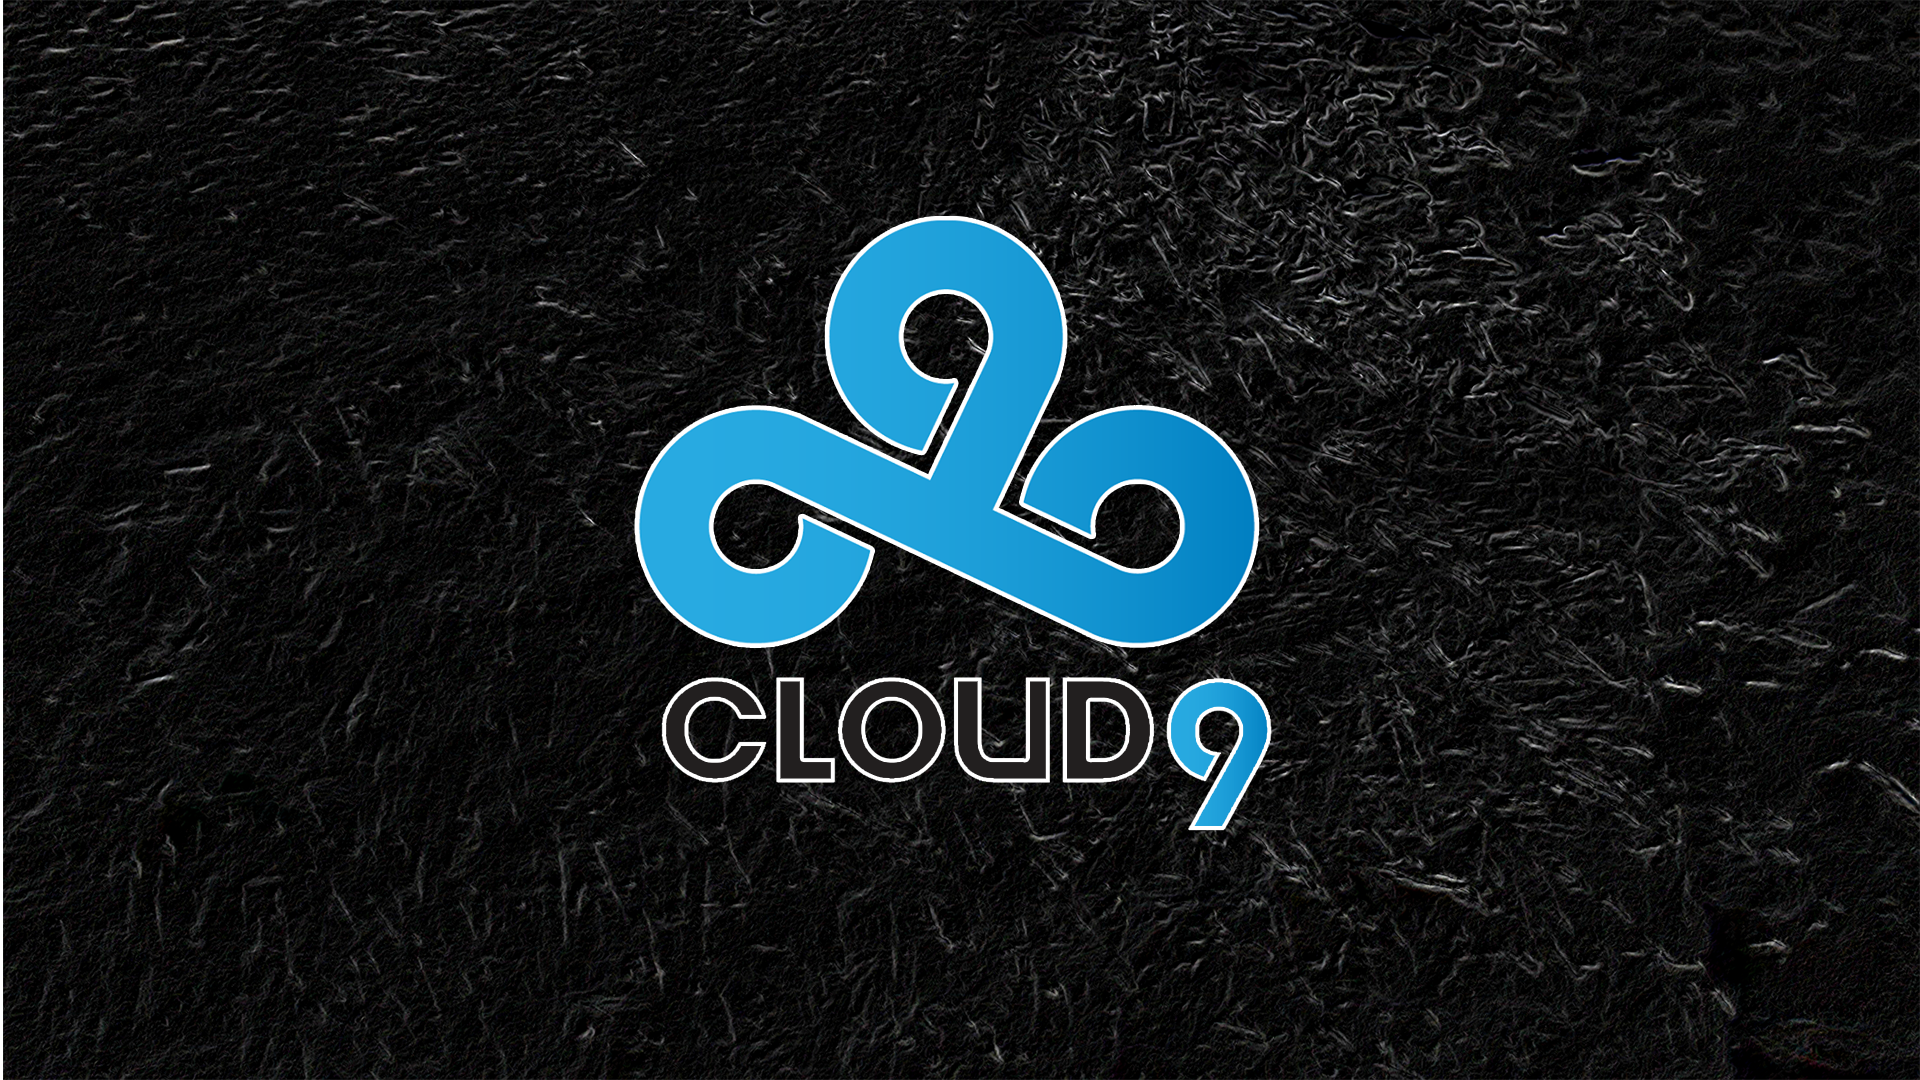 cloud9 csgo and lol wallpaper hd by toskevdesing on